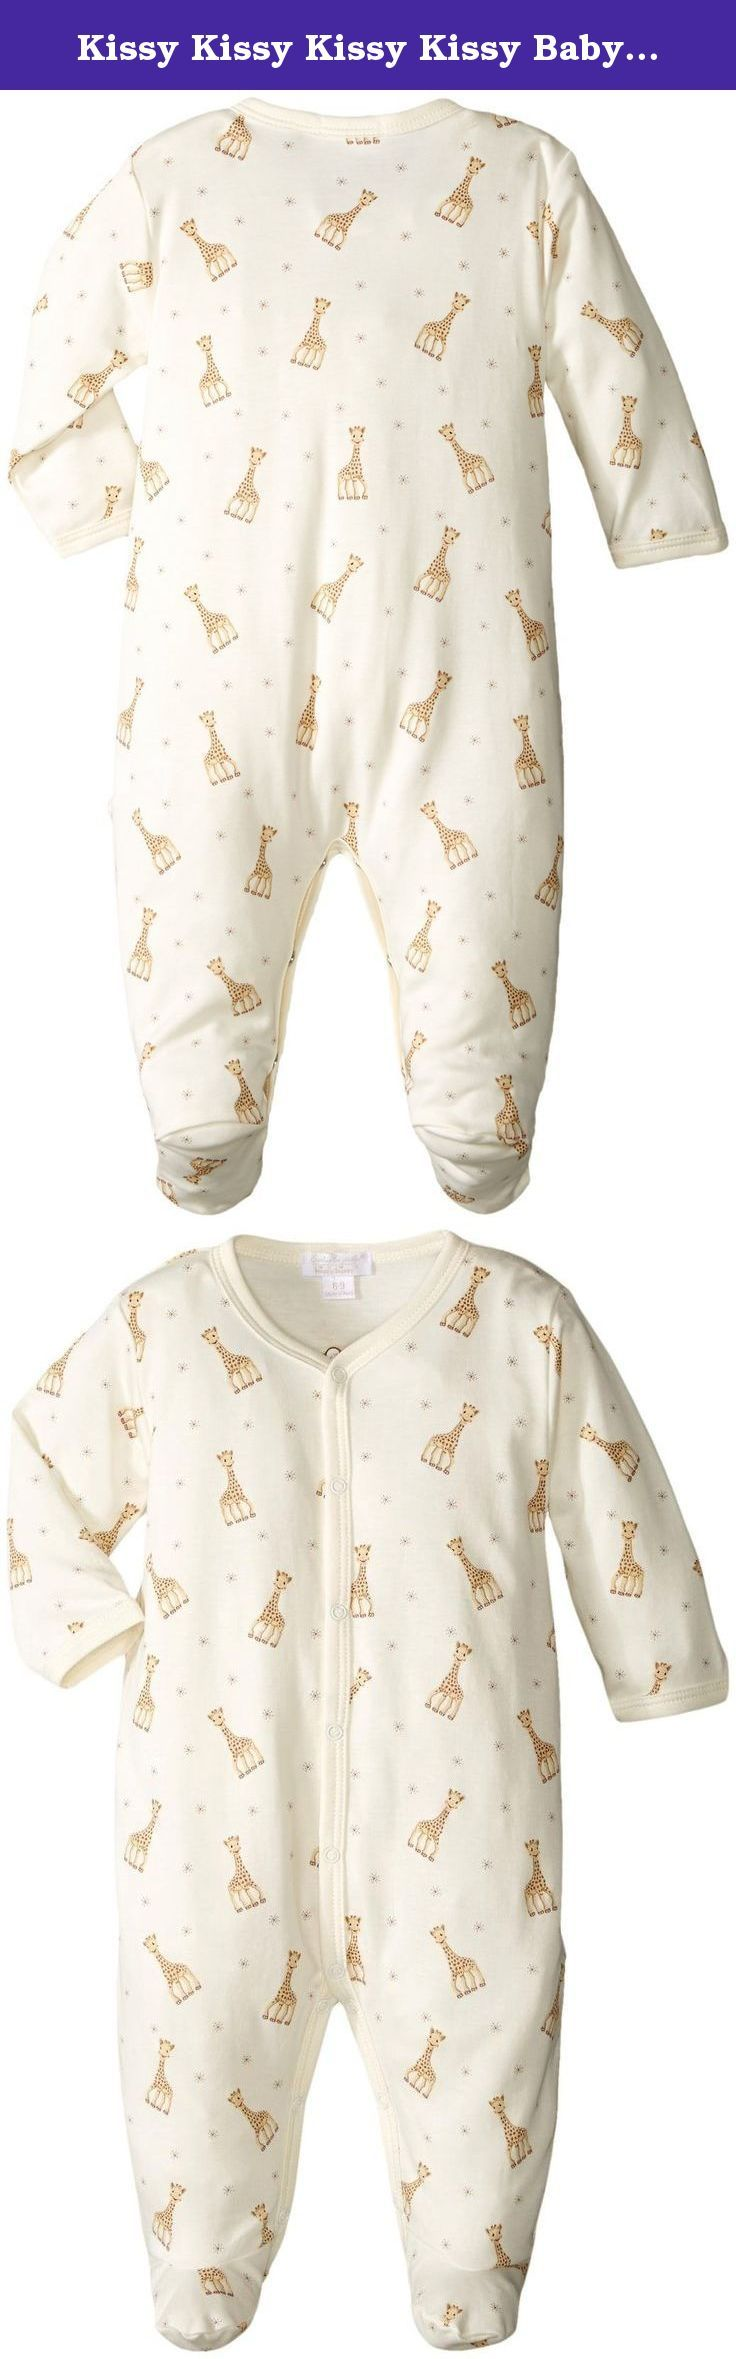 Kissy Kissy Kissy Kissy Baby Boys Sophie La Girafe Print Footie, Beige, NB. At Kissy Kissy we pride ourselves in creating quality products with infinite attention to detail, resulting in Earnie Awards for Design Excellence. Known for our trademark softness, we use only the highest quality Peruvian Pima cotton so that the most luxurious and gentlest fabric touches a baby's skin.